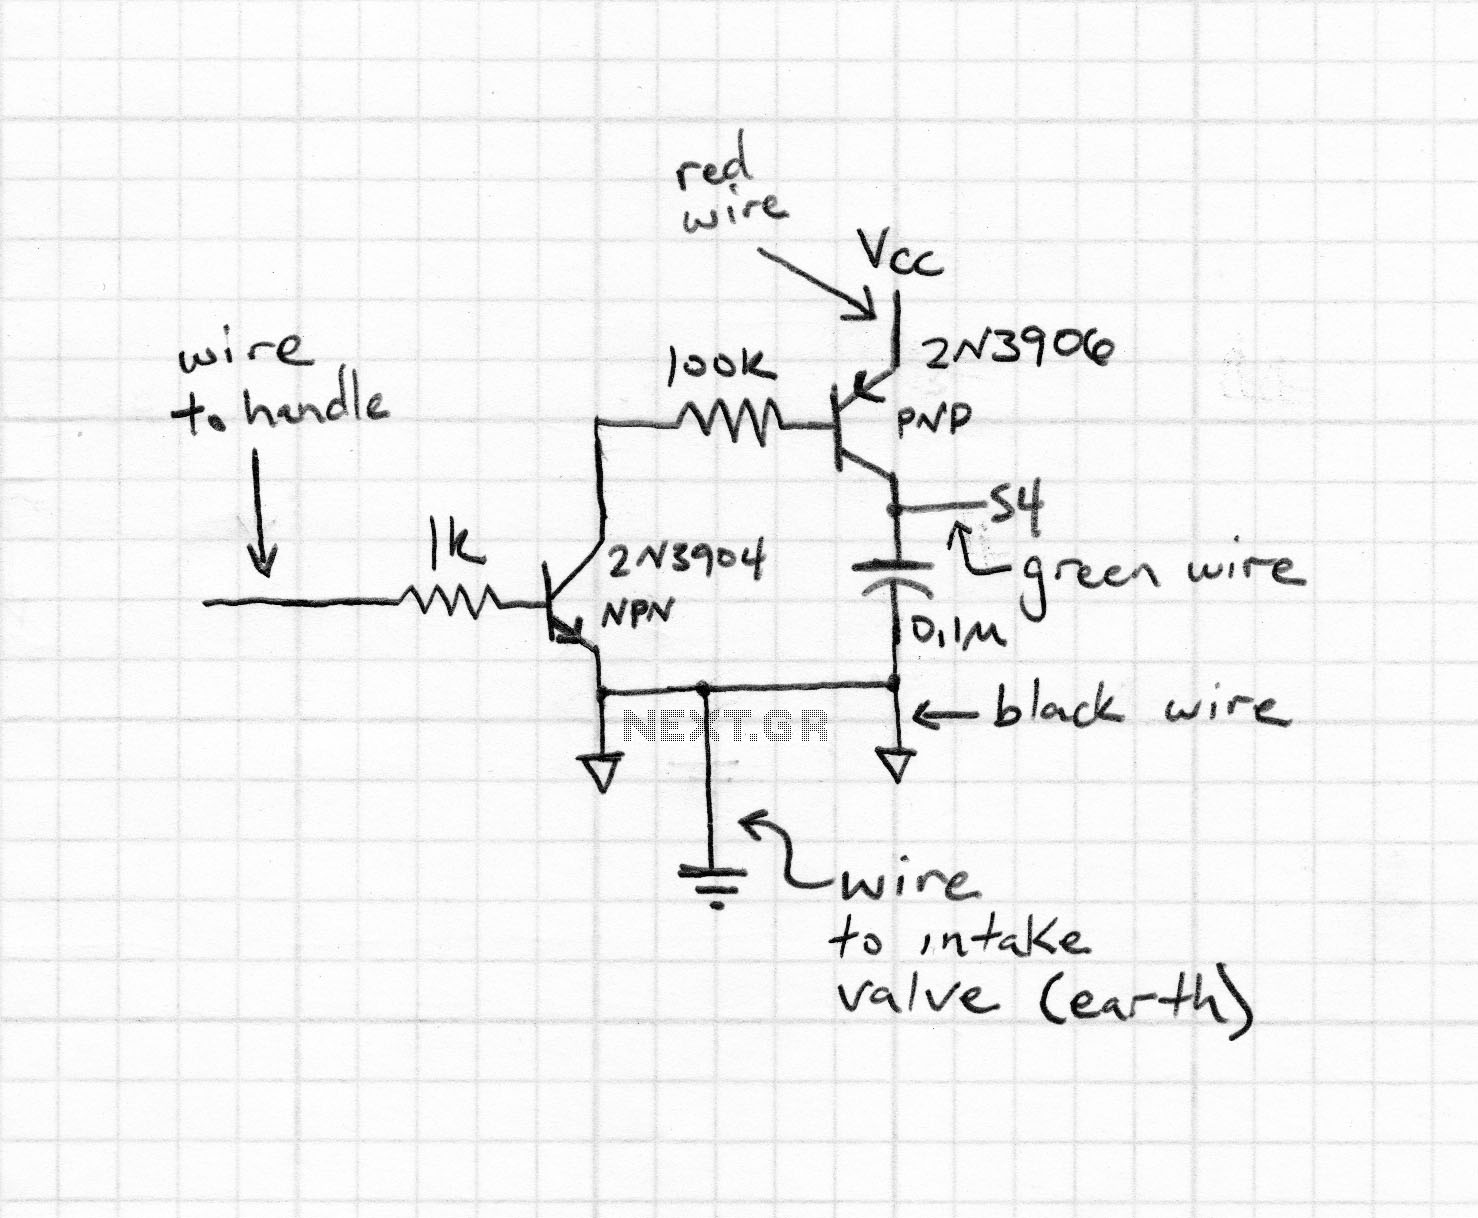 Results Page 4 About 12v Charger Searching Circuits At Mobile Phone Travel Circuit Diagram Usb Cell Schematic